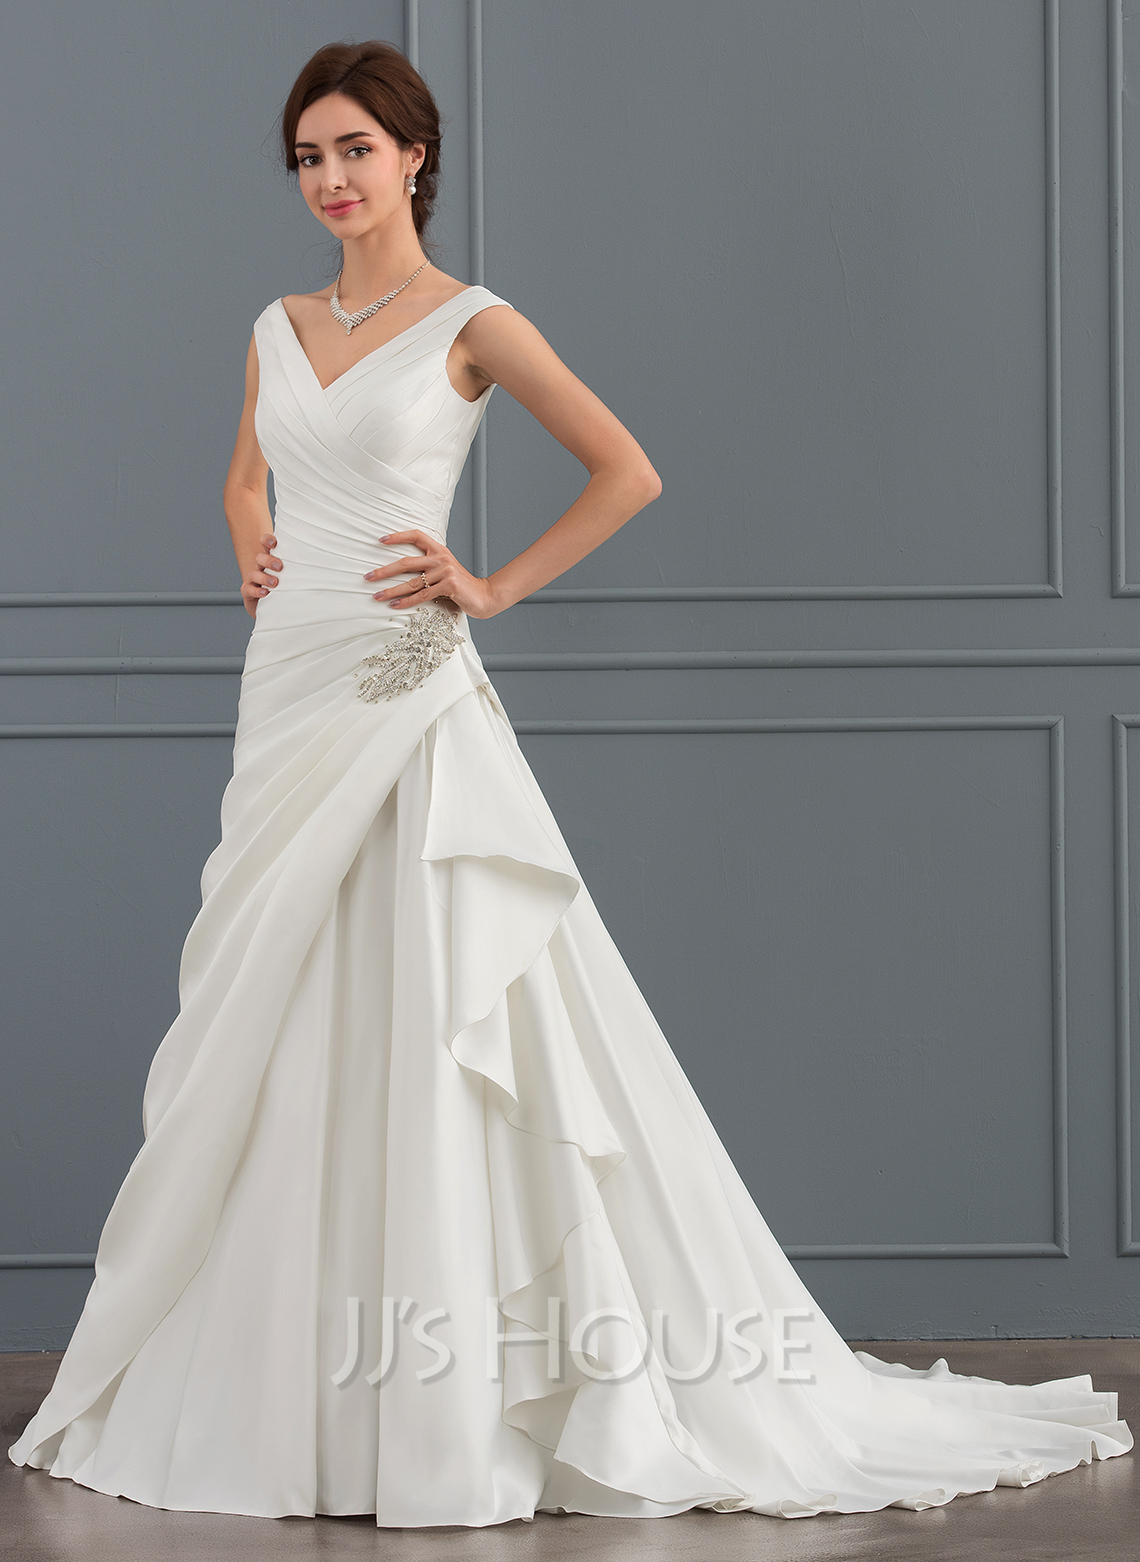 f666c4107021c A-Line/Princess V-neck Court Train Satin Wedding Dress With Beading.  Loading zoom